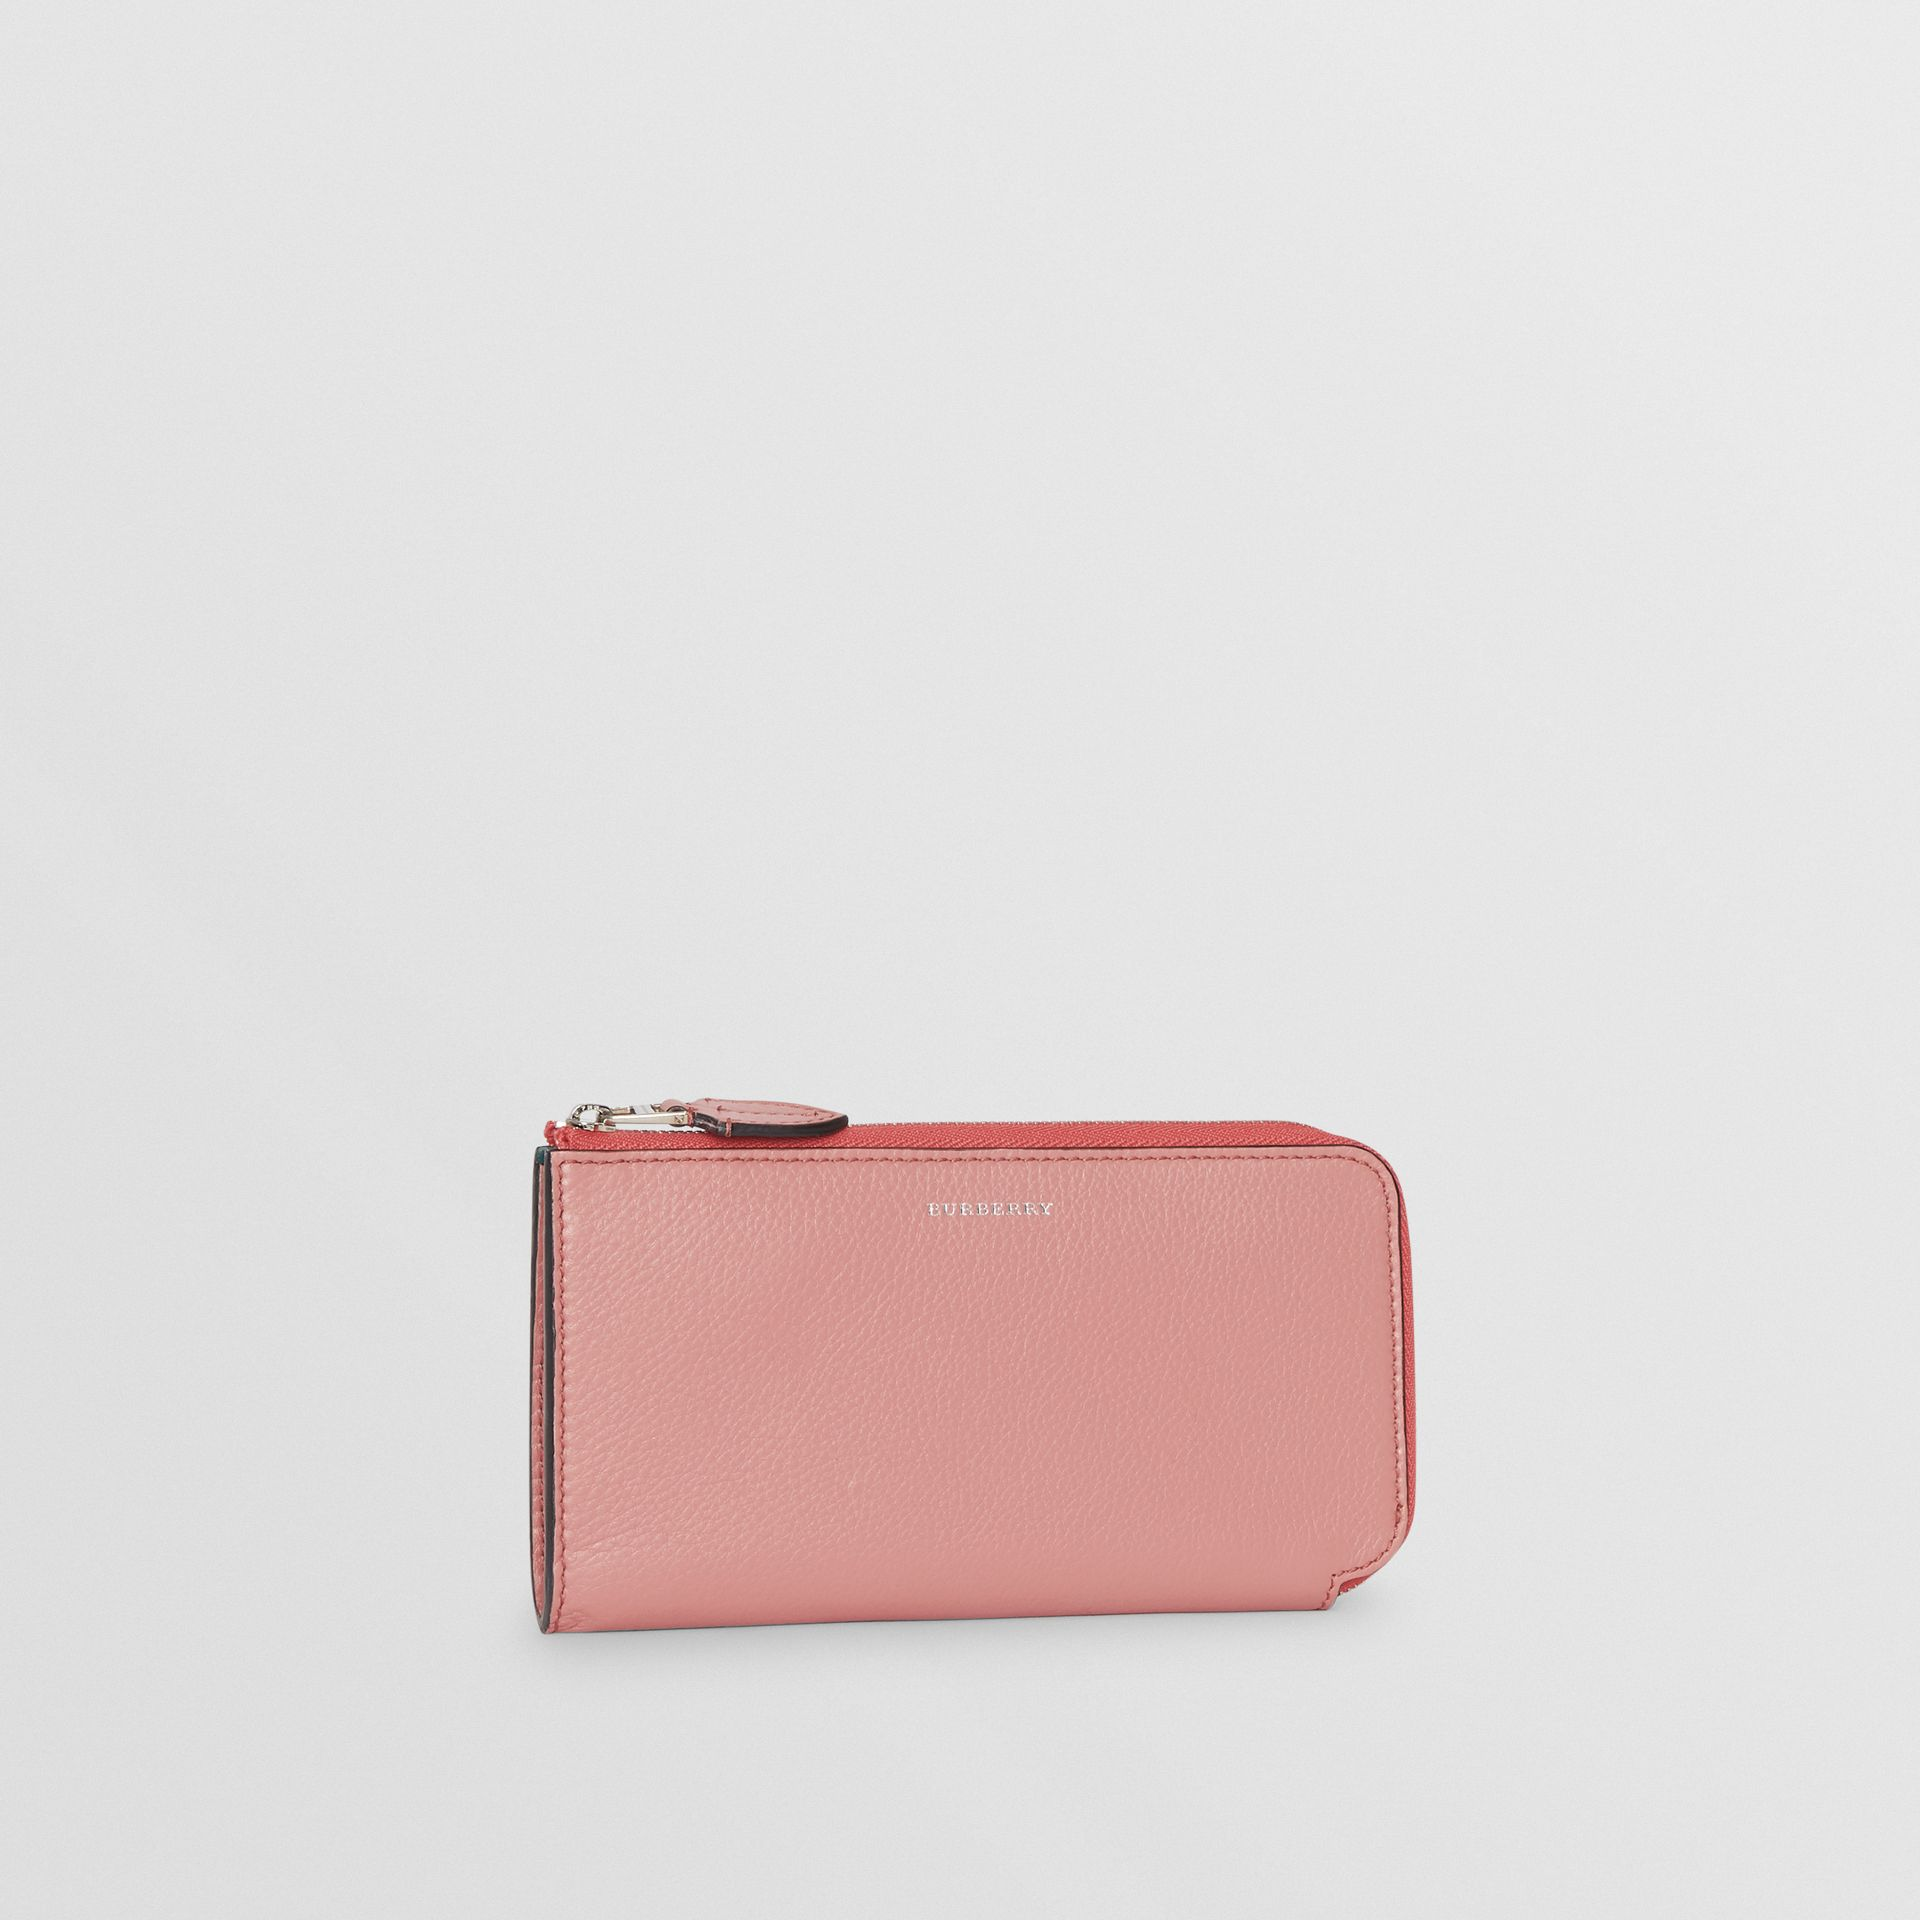 Two-tone Leather Ziparound Wallet and Coin Case in Dusty Rose - Women | Burberry United States - gallery image 4